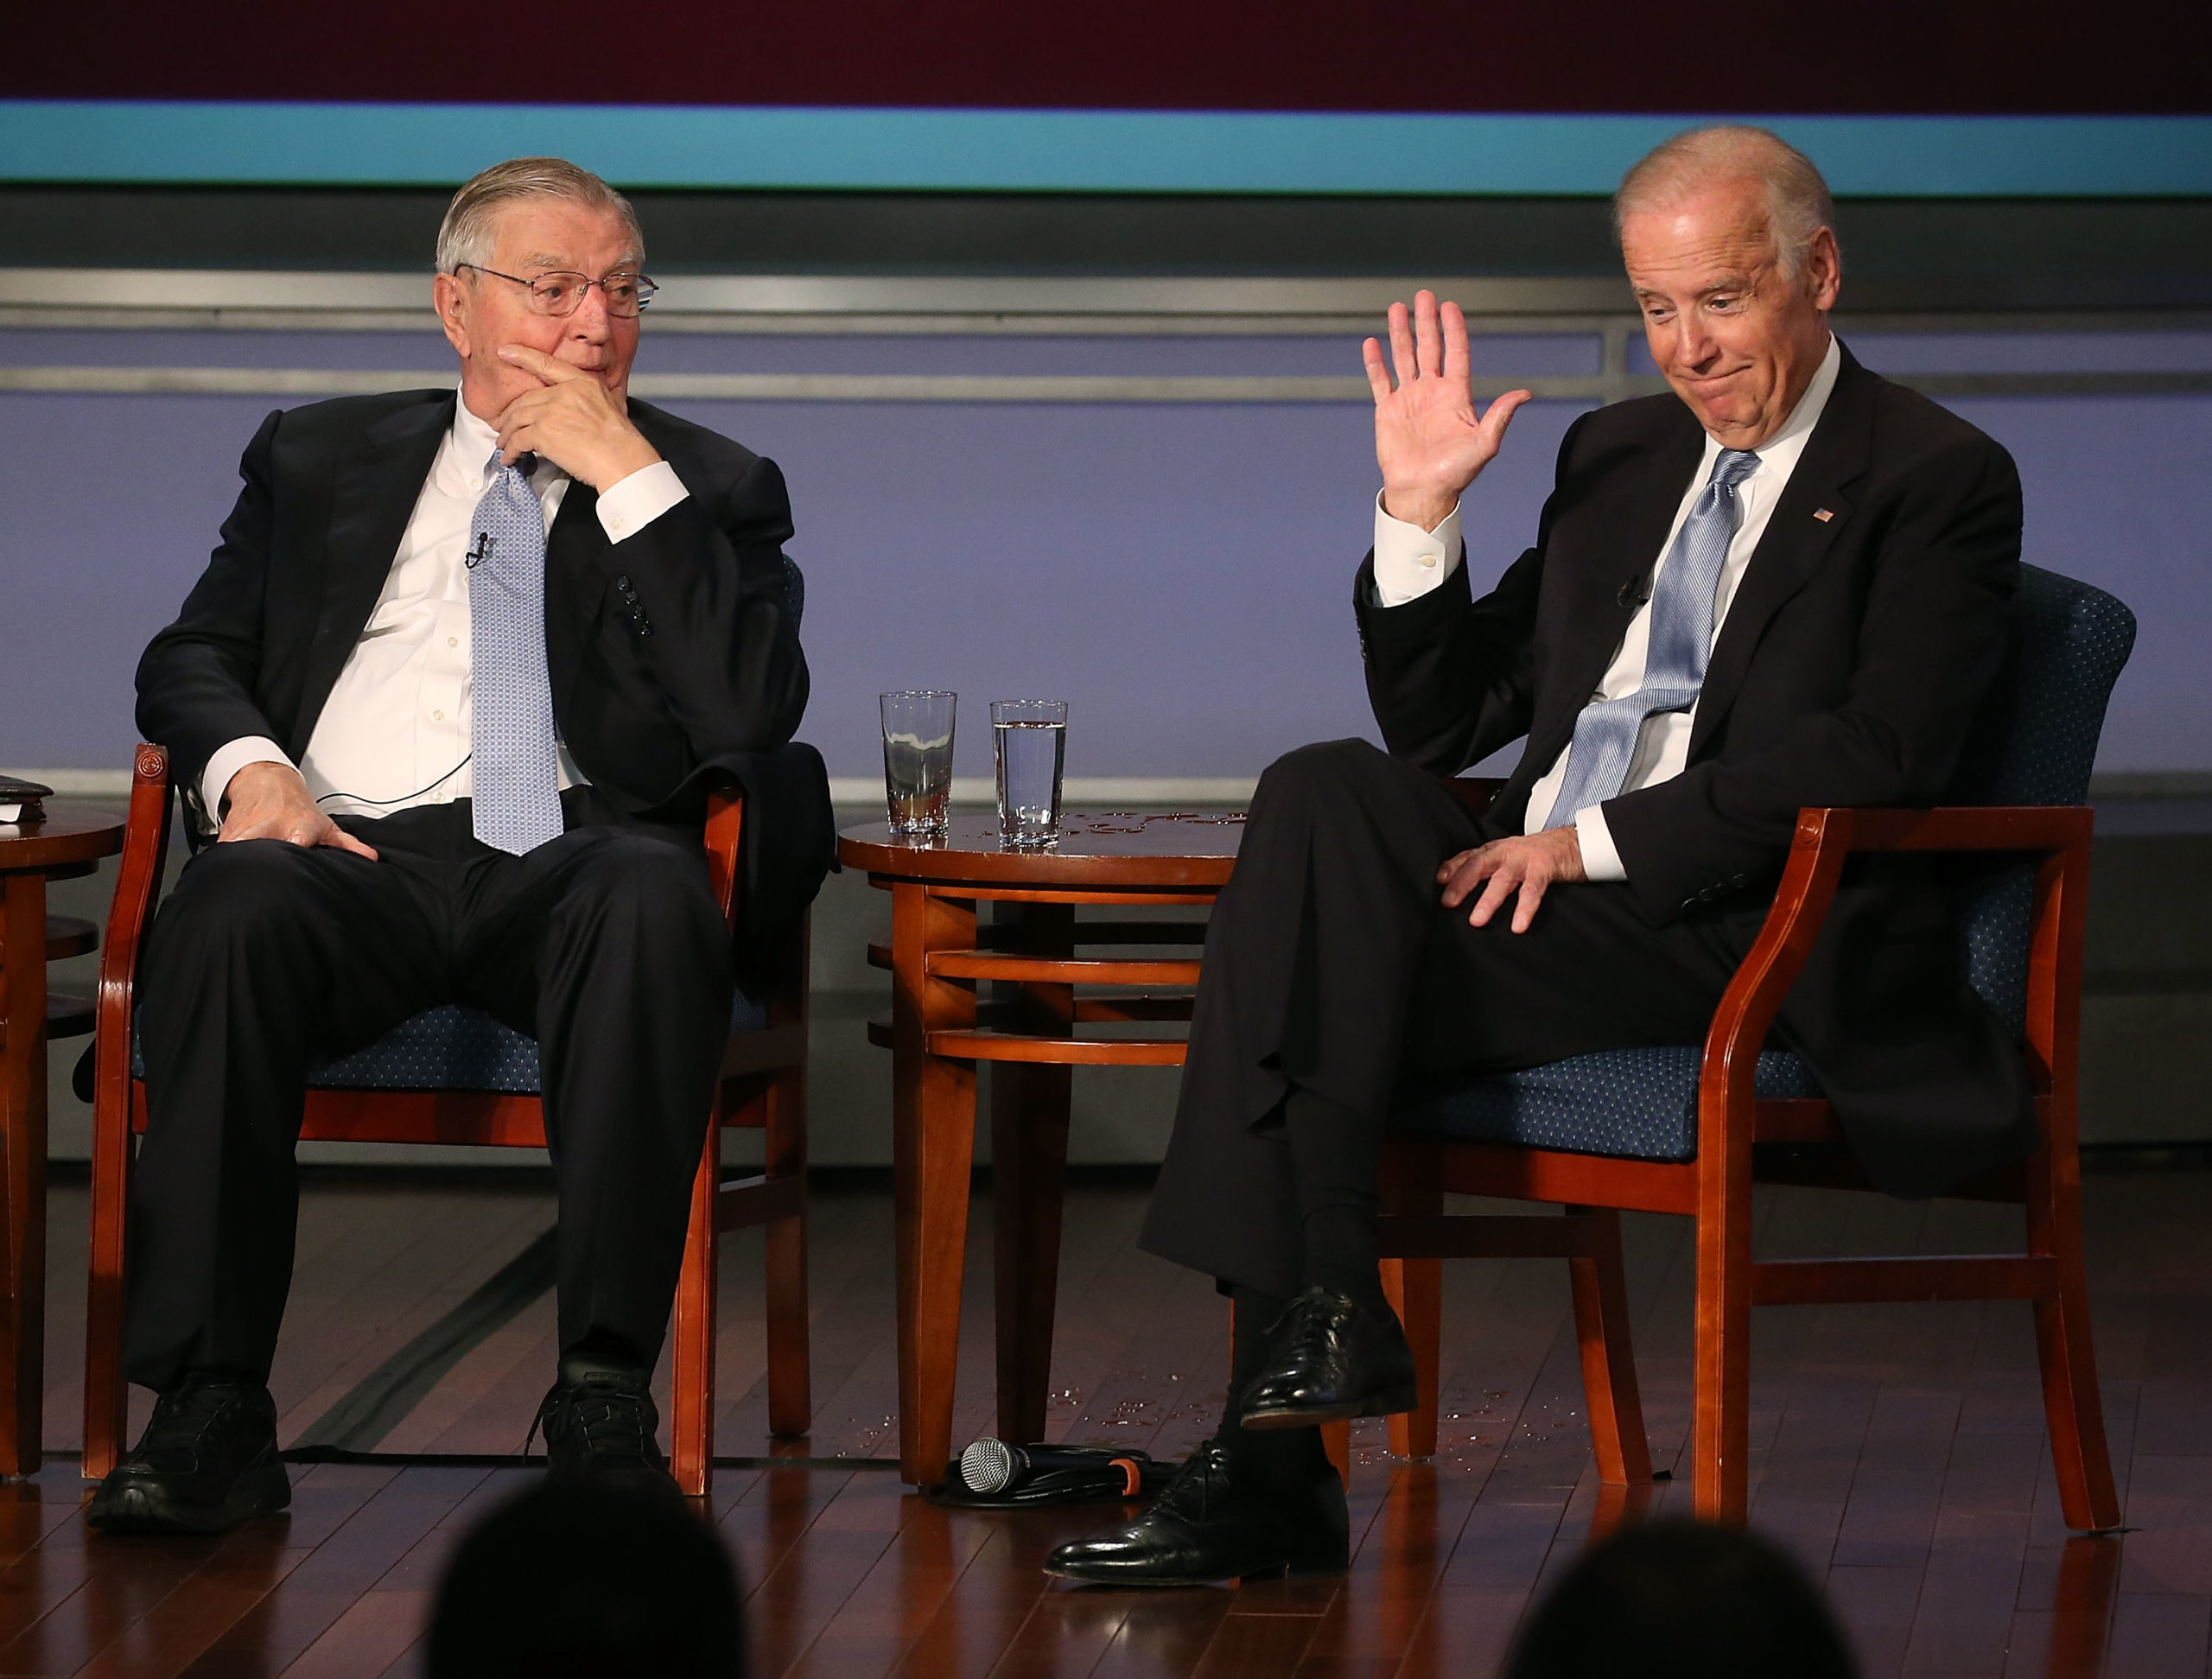 WASHINGTON, DC - OCTOBER 20: US Vice President Joe Biden (R) apeaks about former Vice President Walter Mondale (L) during an event to honor the former VP at George Washington University October 20, 2015 in Washington, DC. Biden remains at the center of rumors regarding a potential campaign for the U.S. presidency. (Photo by Mark Wilson/Getty Images)